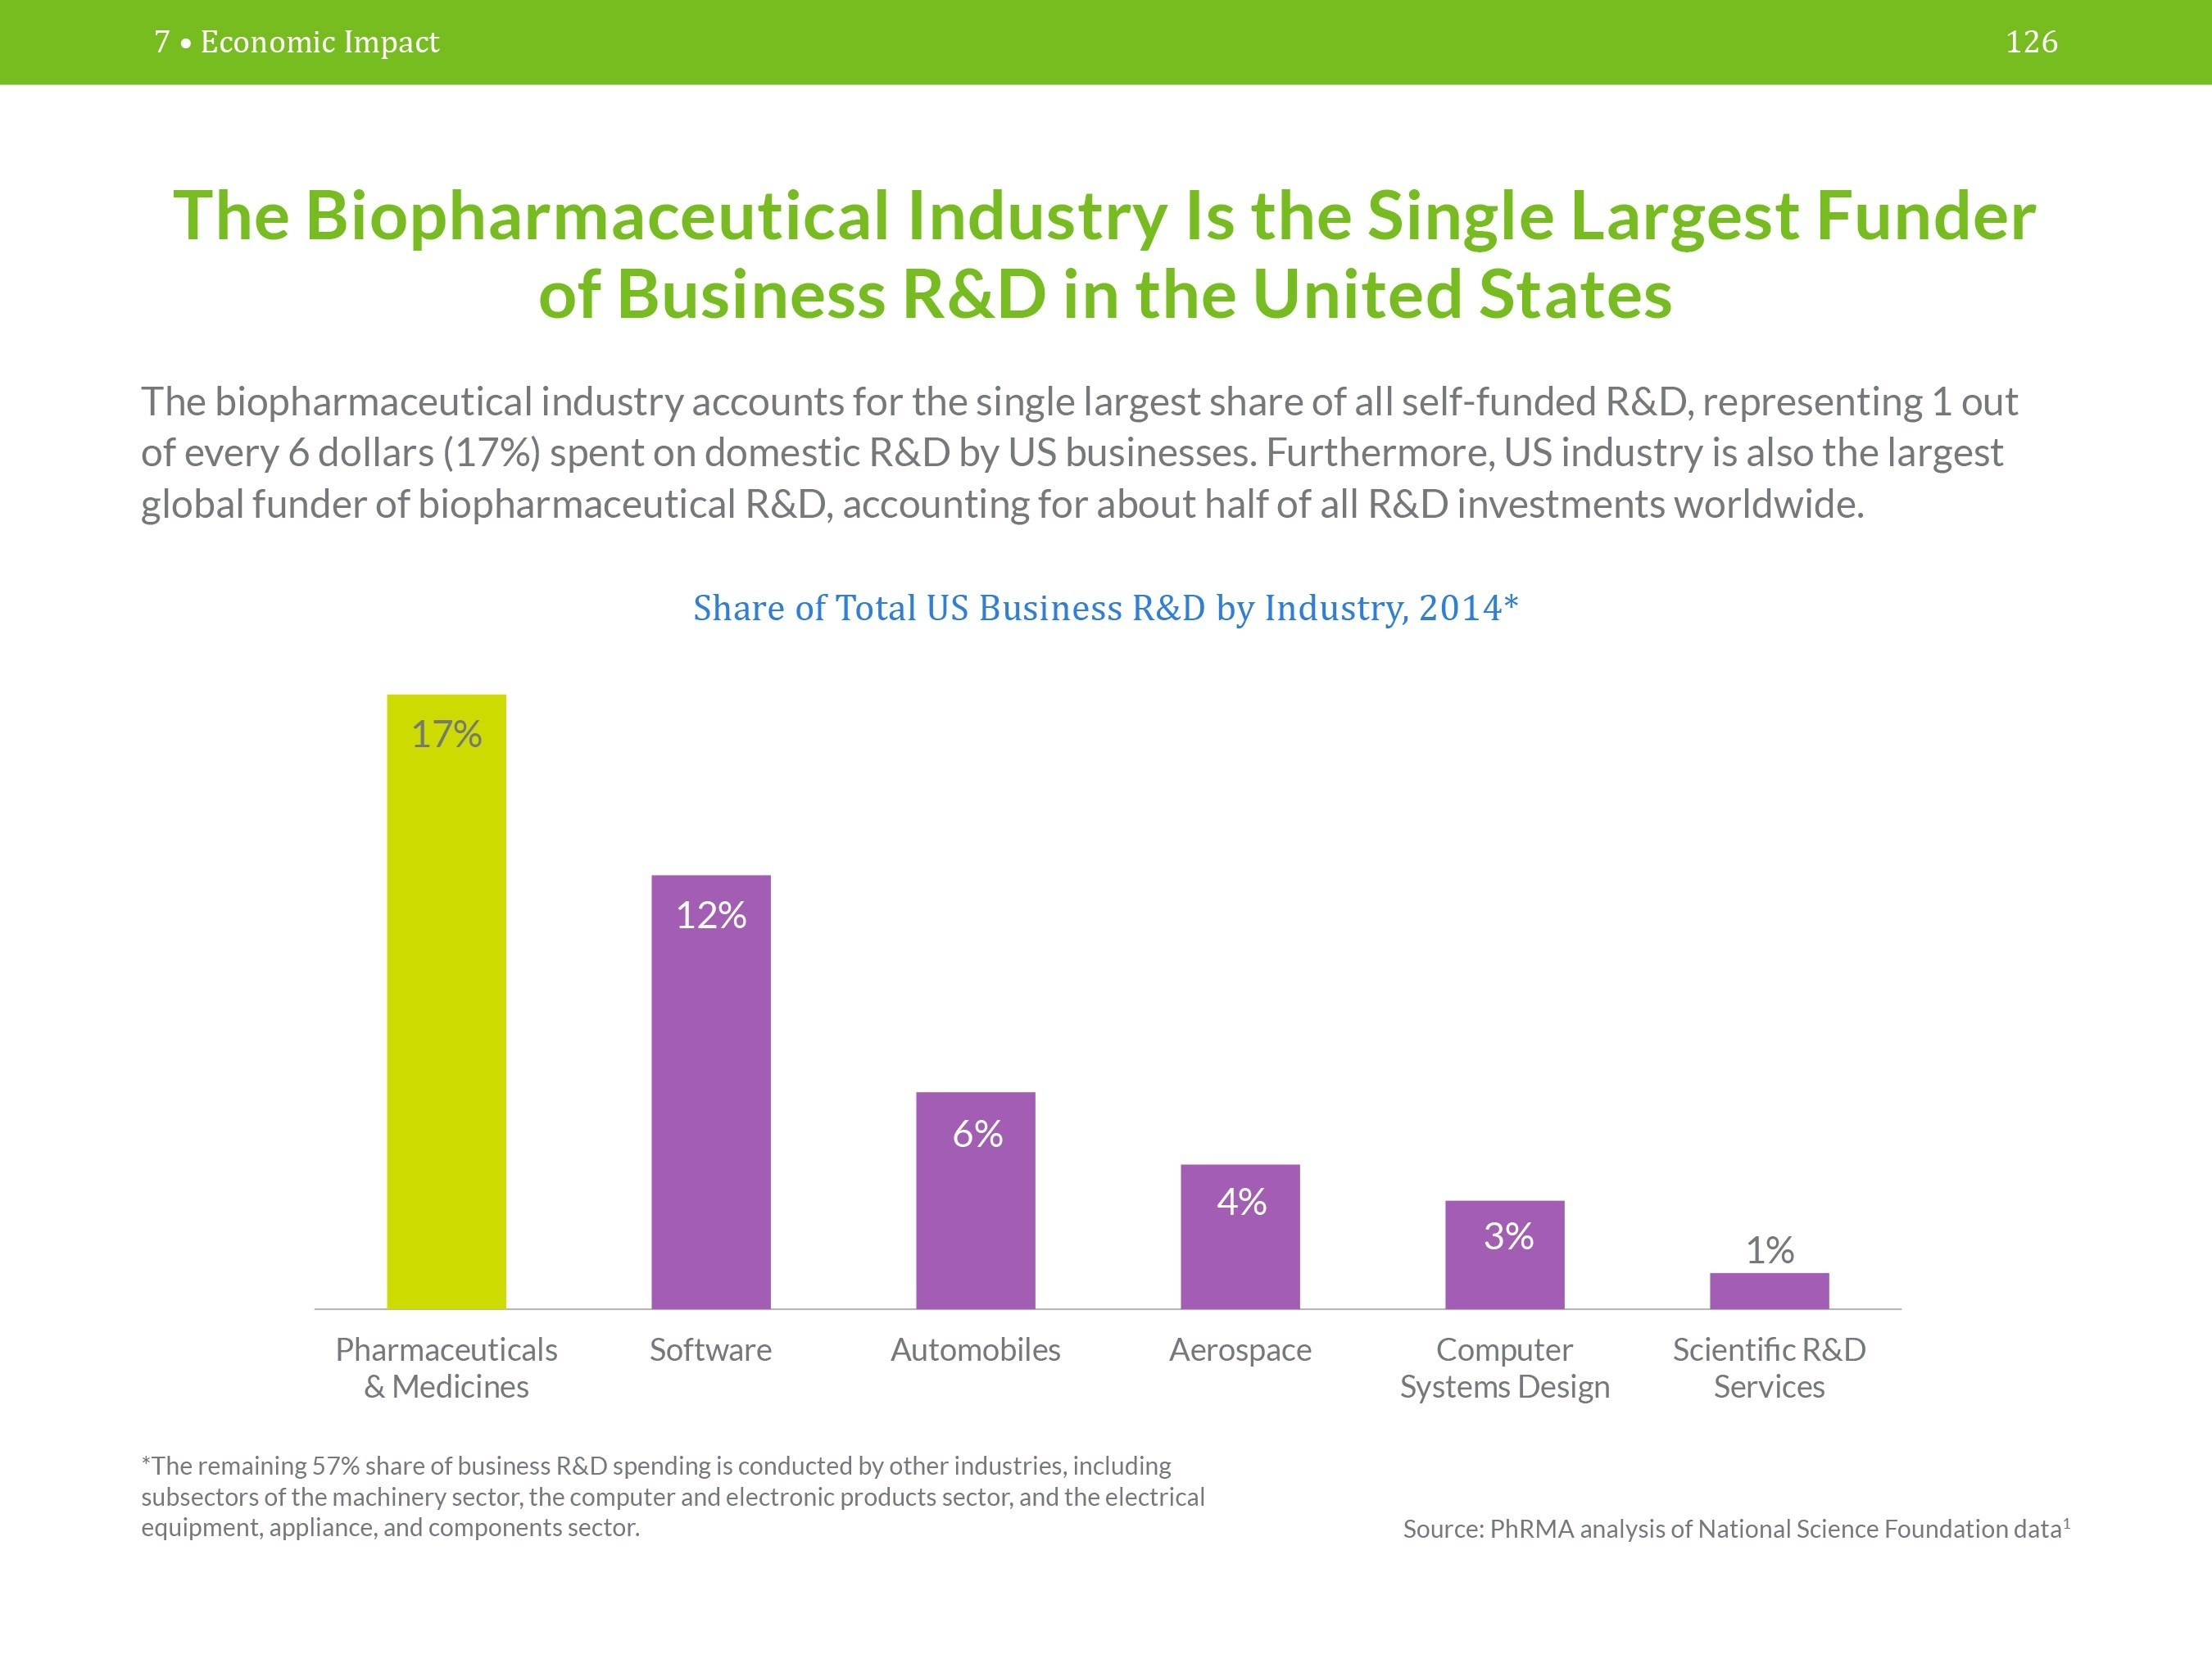 The biopharmaceutical industry accounts for 1 out of every 6 dollars spent on domestic R&D by US businesses.